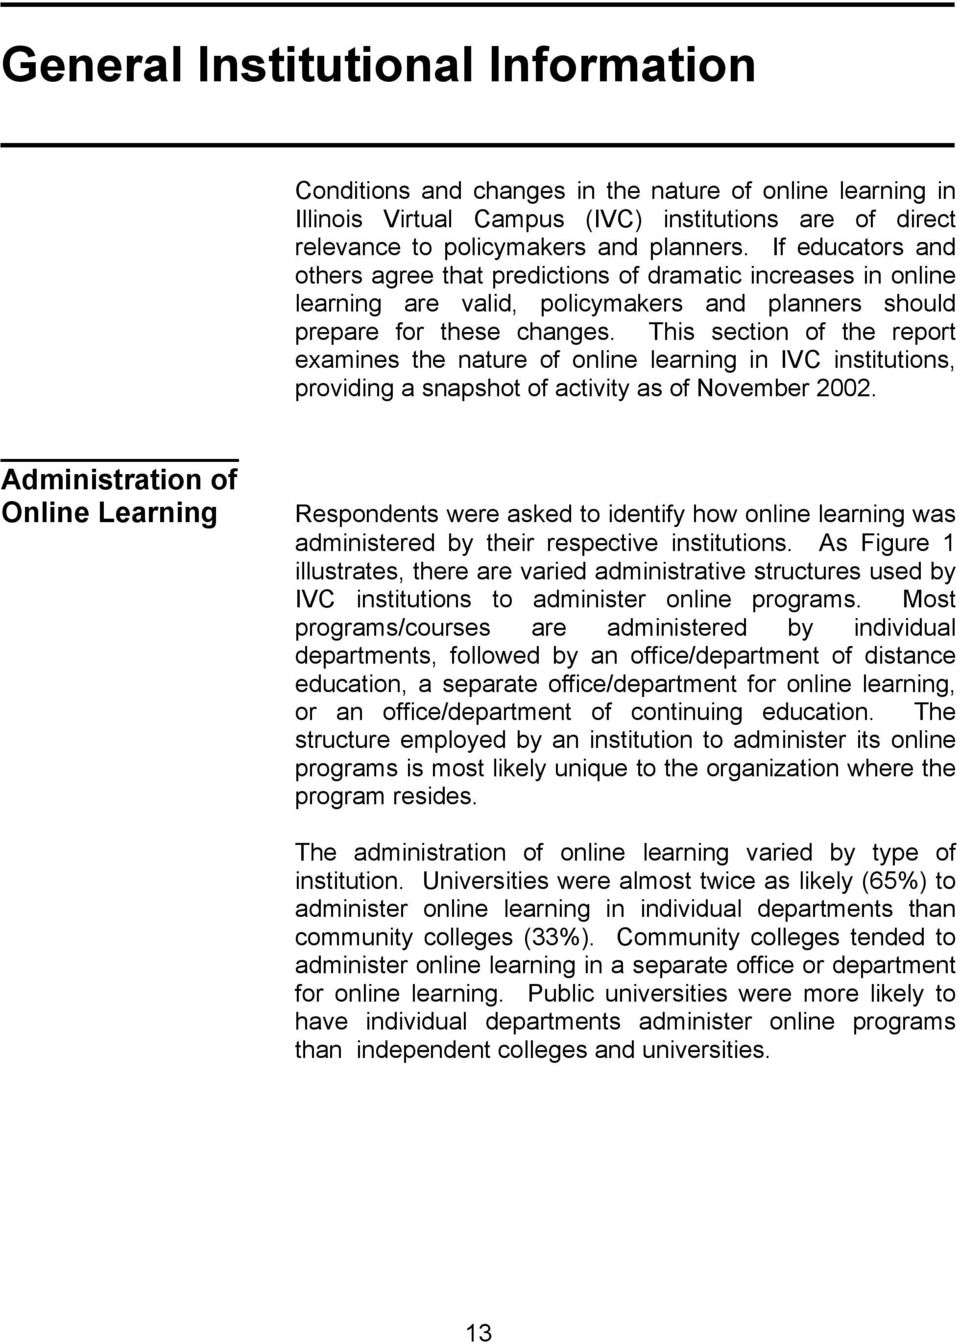 This section of the report examines the nature of online learning in IVC institutions, providing a snapshot of activity as of November 2002.